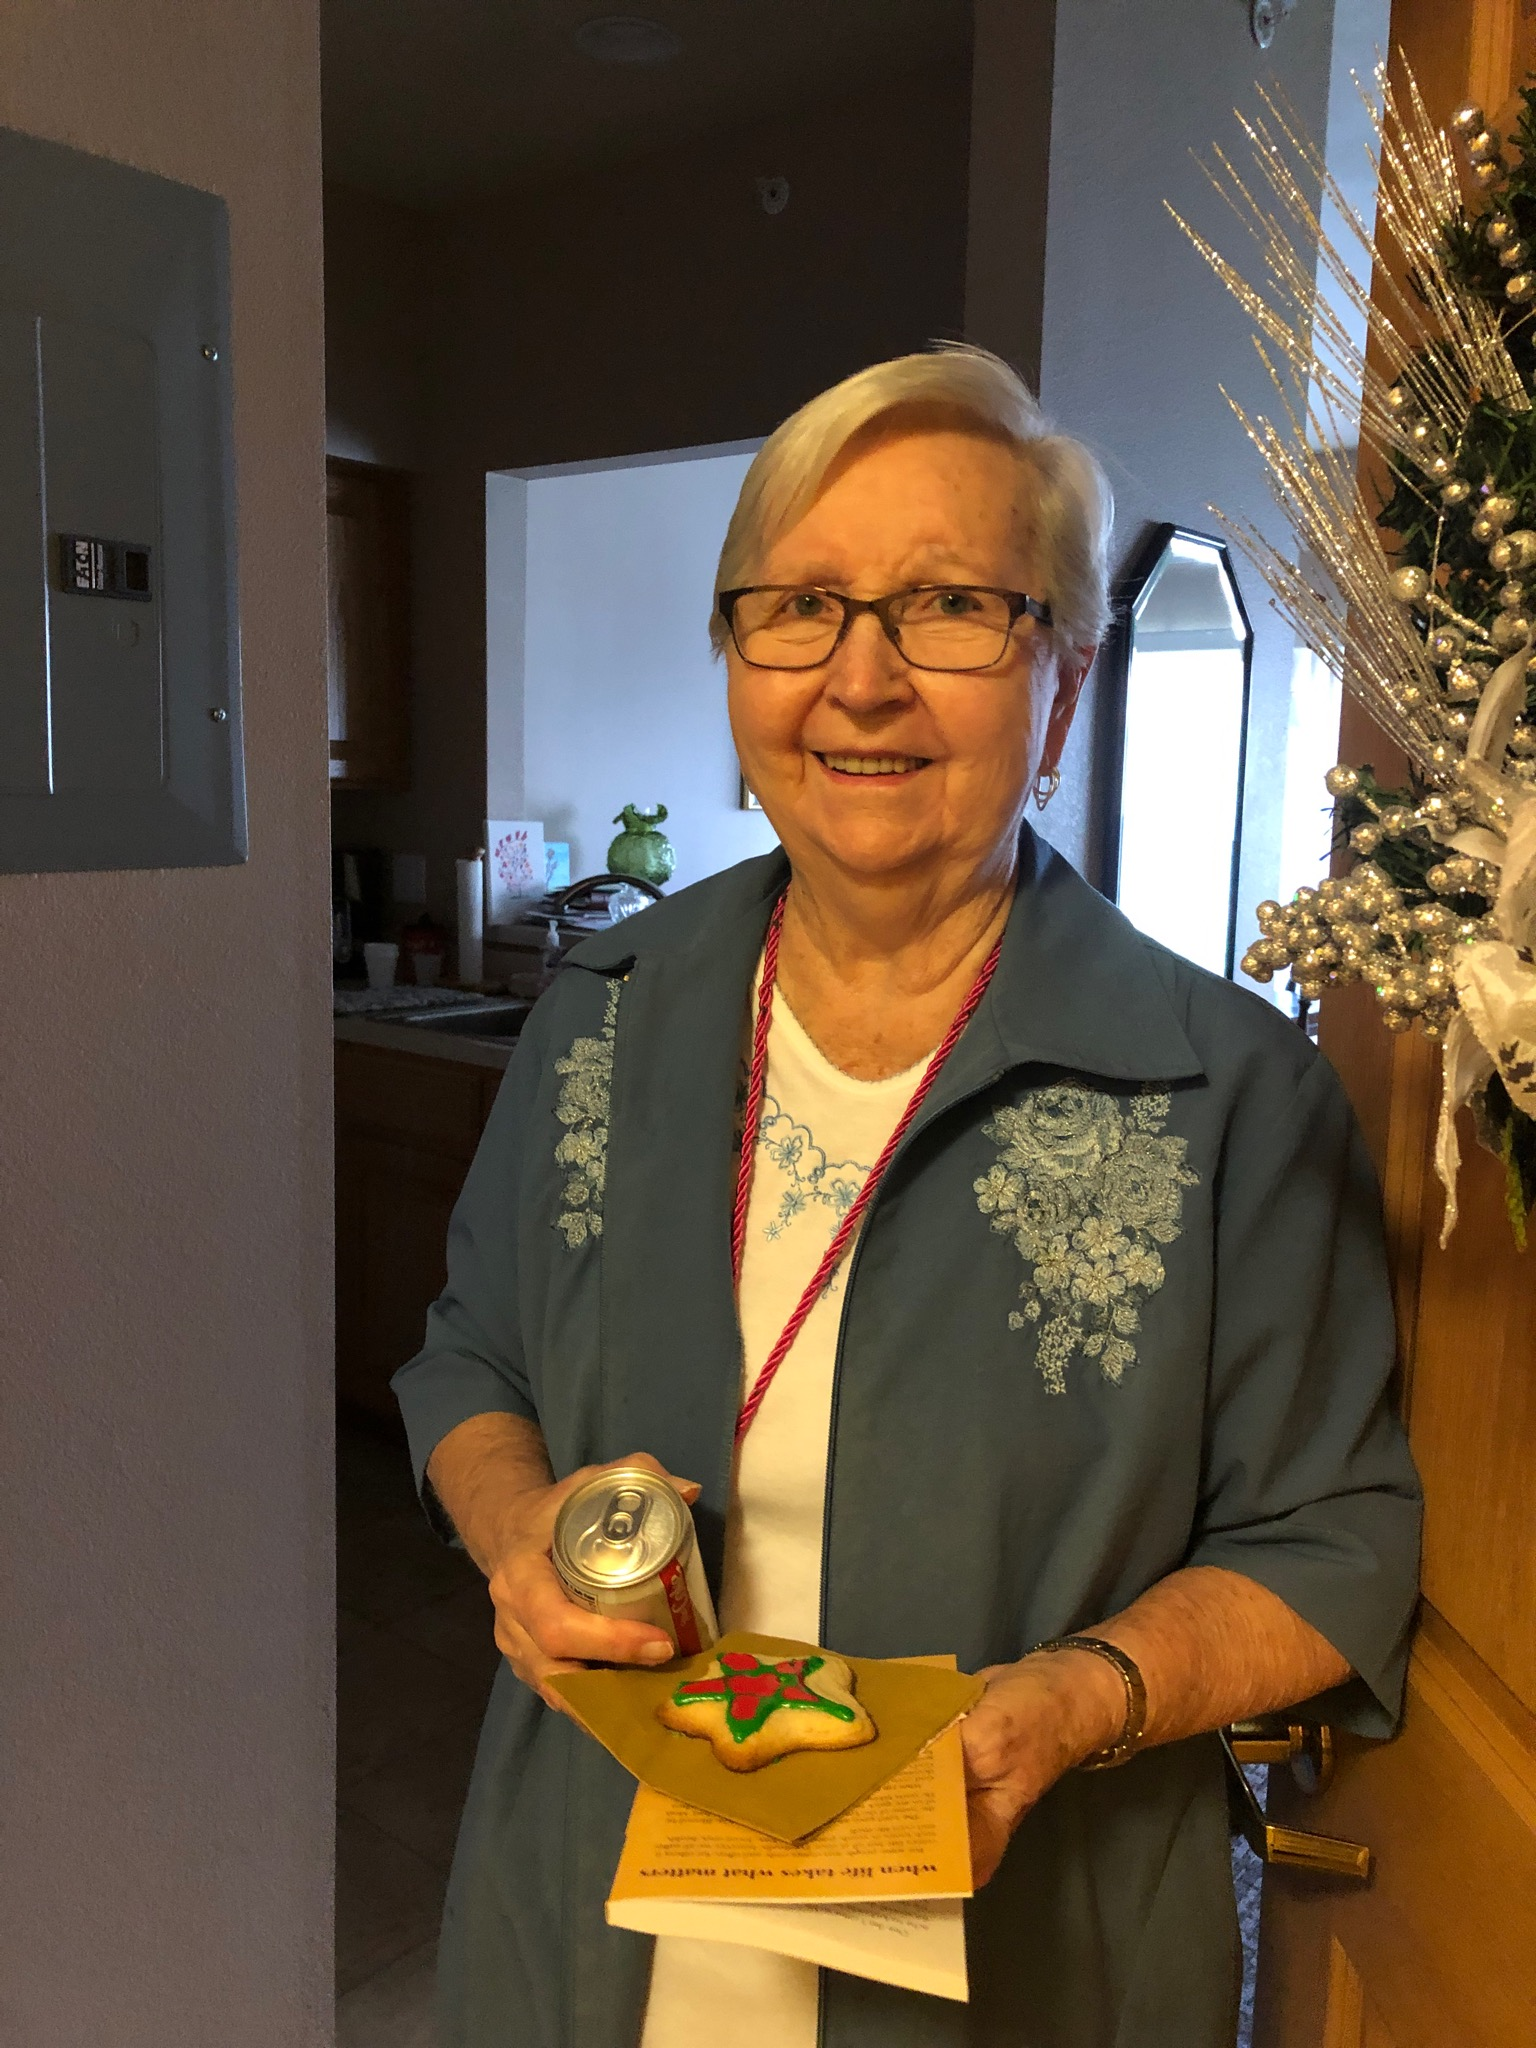 Jean loved her surprise from Chef Bobby: Homemade Christmas Cookies on National Cookie Day!